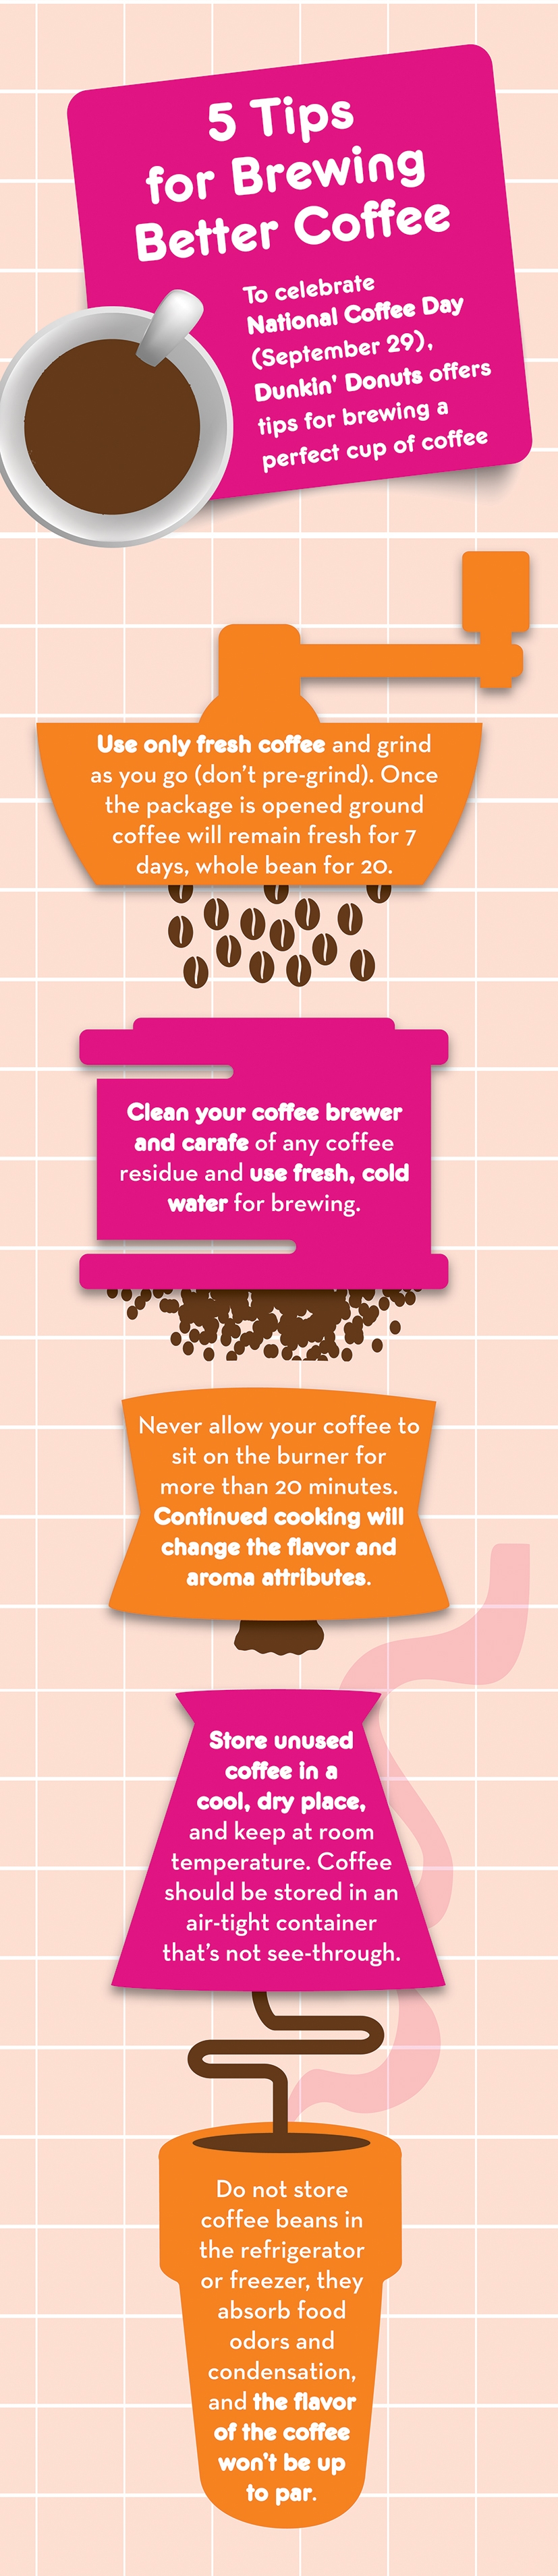 dunkin-donuts-5-tips-for-brewing-better-coffee_5065ca4327840